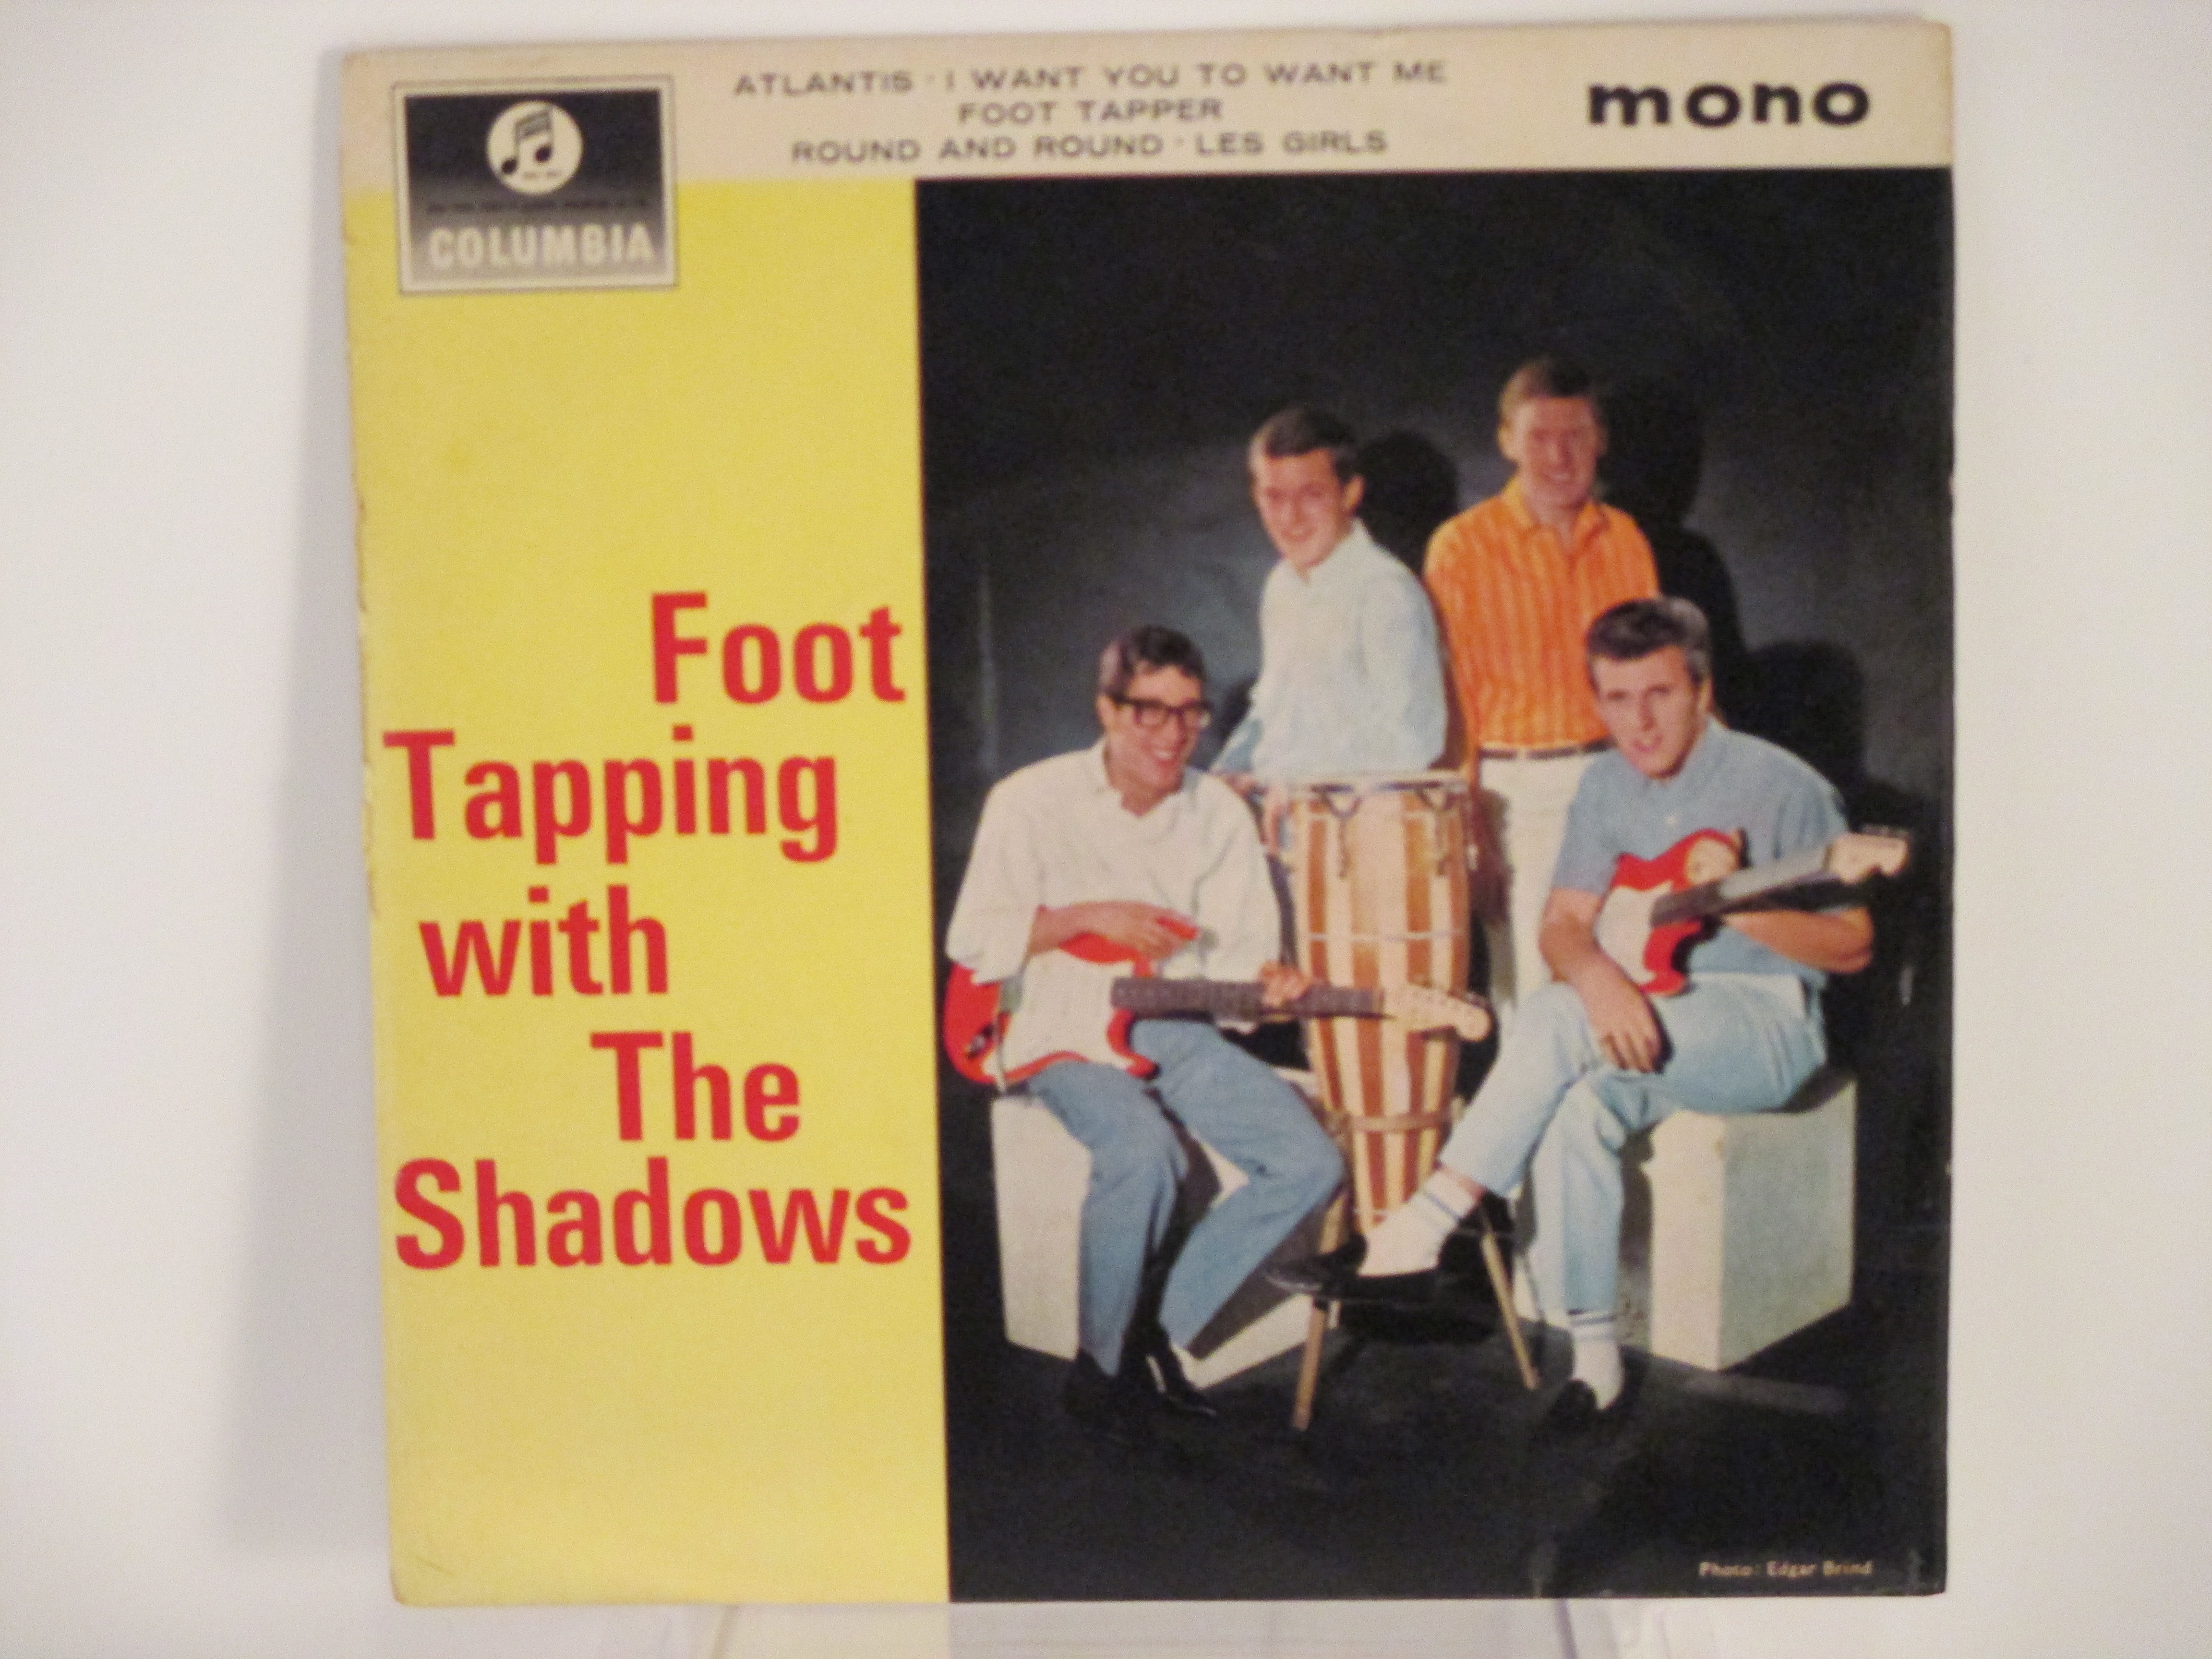 """SHADOWS The  : (EP) """"Foot tapping with the Shadows"""" : Atlantis / I want you to want me / Foot tapper / Round and round / Les girls"""